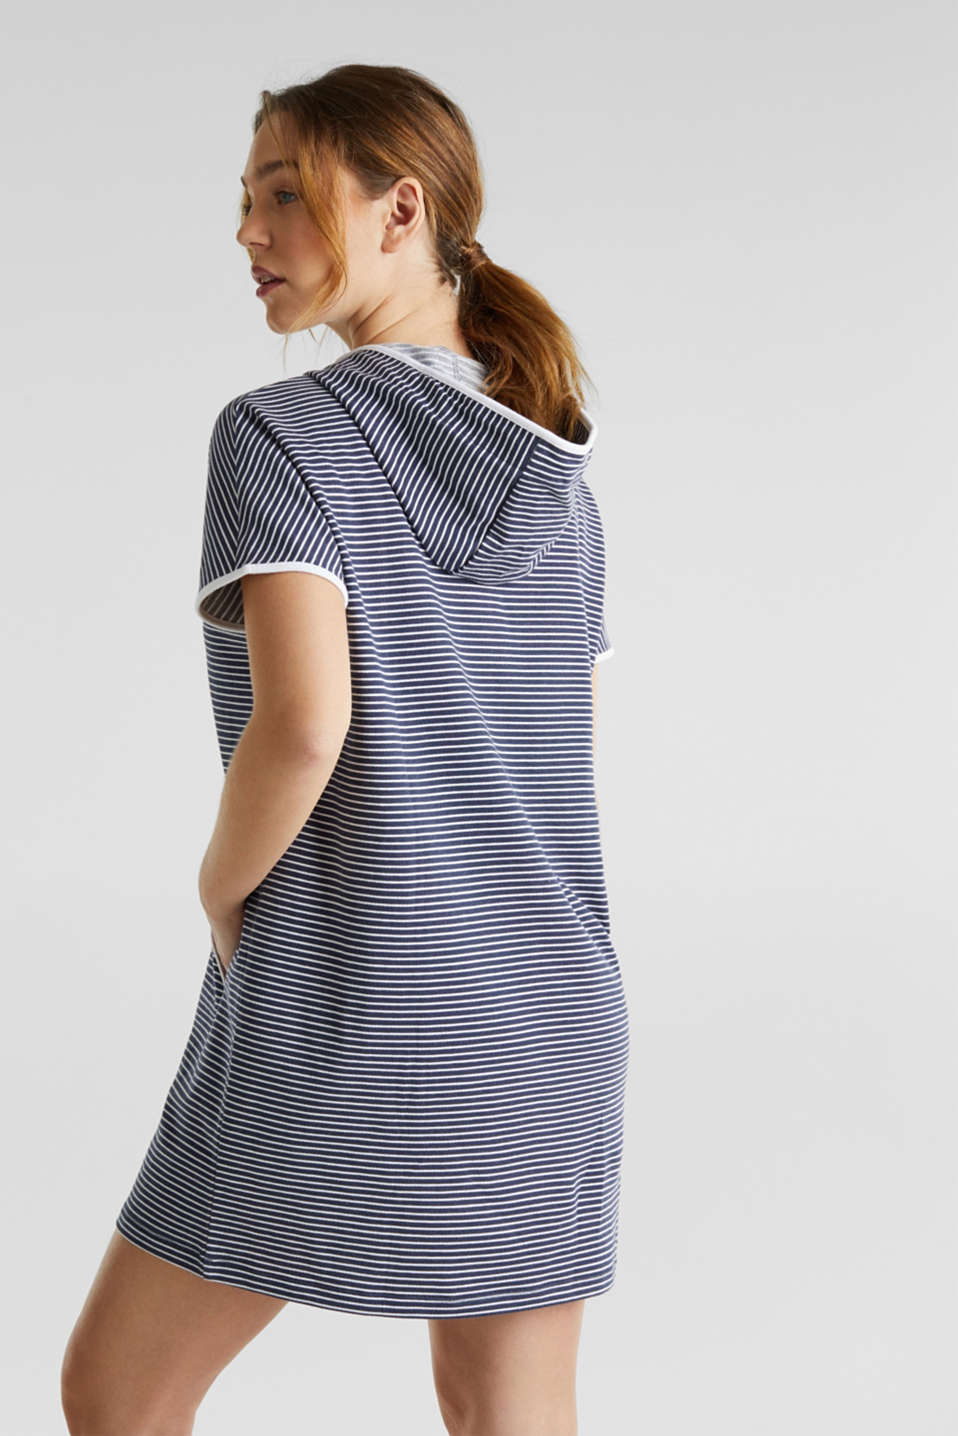 Hooded dress with stripes, 100% cotton, NAVY 2, detail image number 1